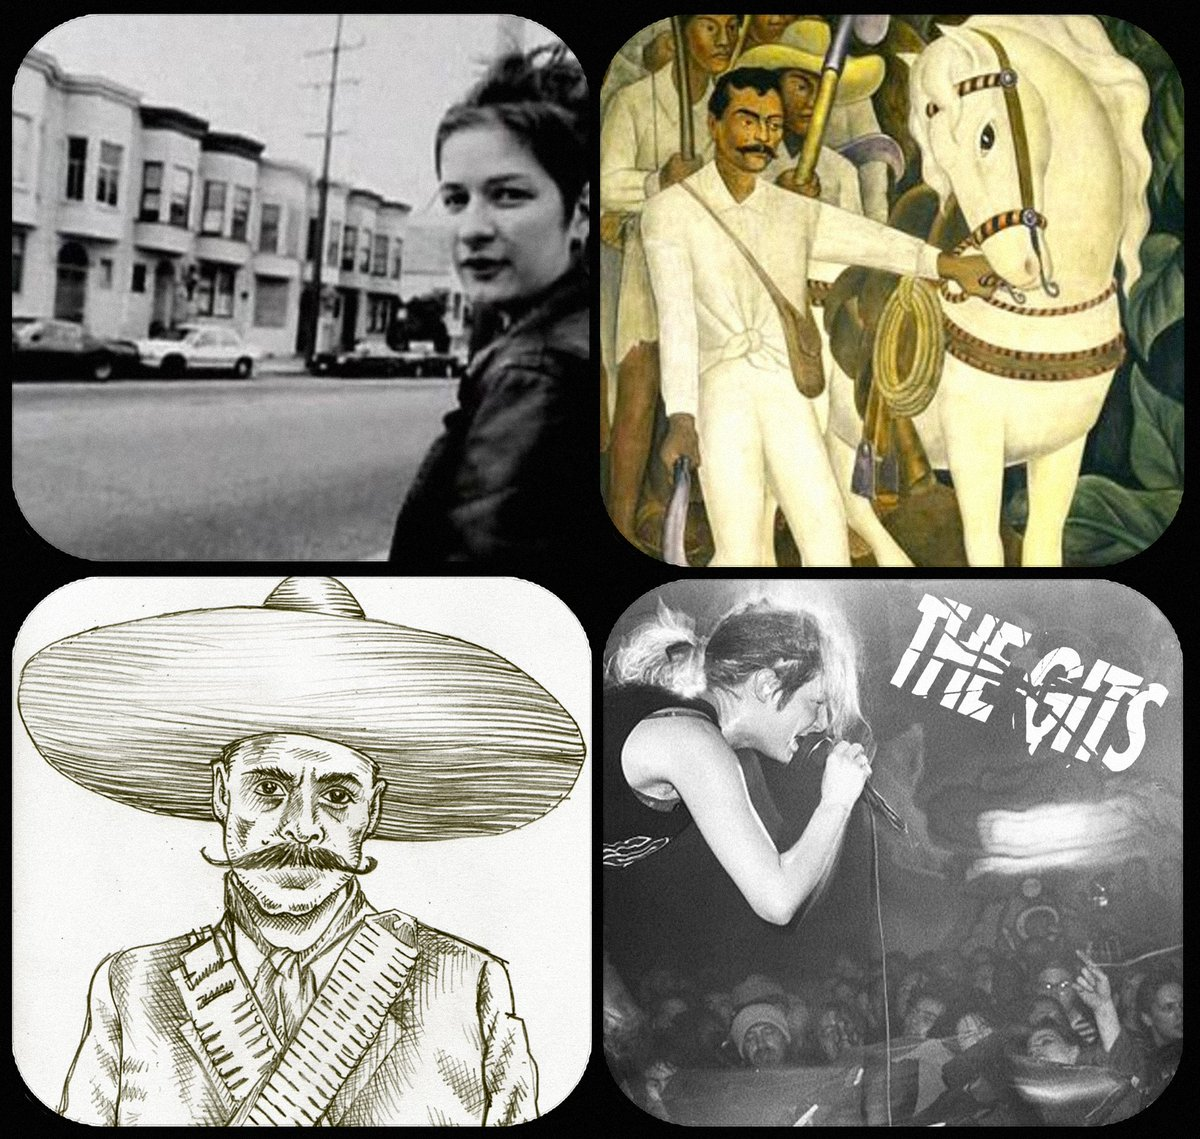 Educational project combining the stories of Mia Zapata & Mexican revolutionary Emiliano Zapata, donations here: https://t.co/NDkV82Jnvm